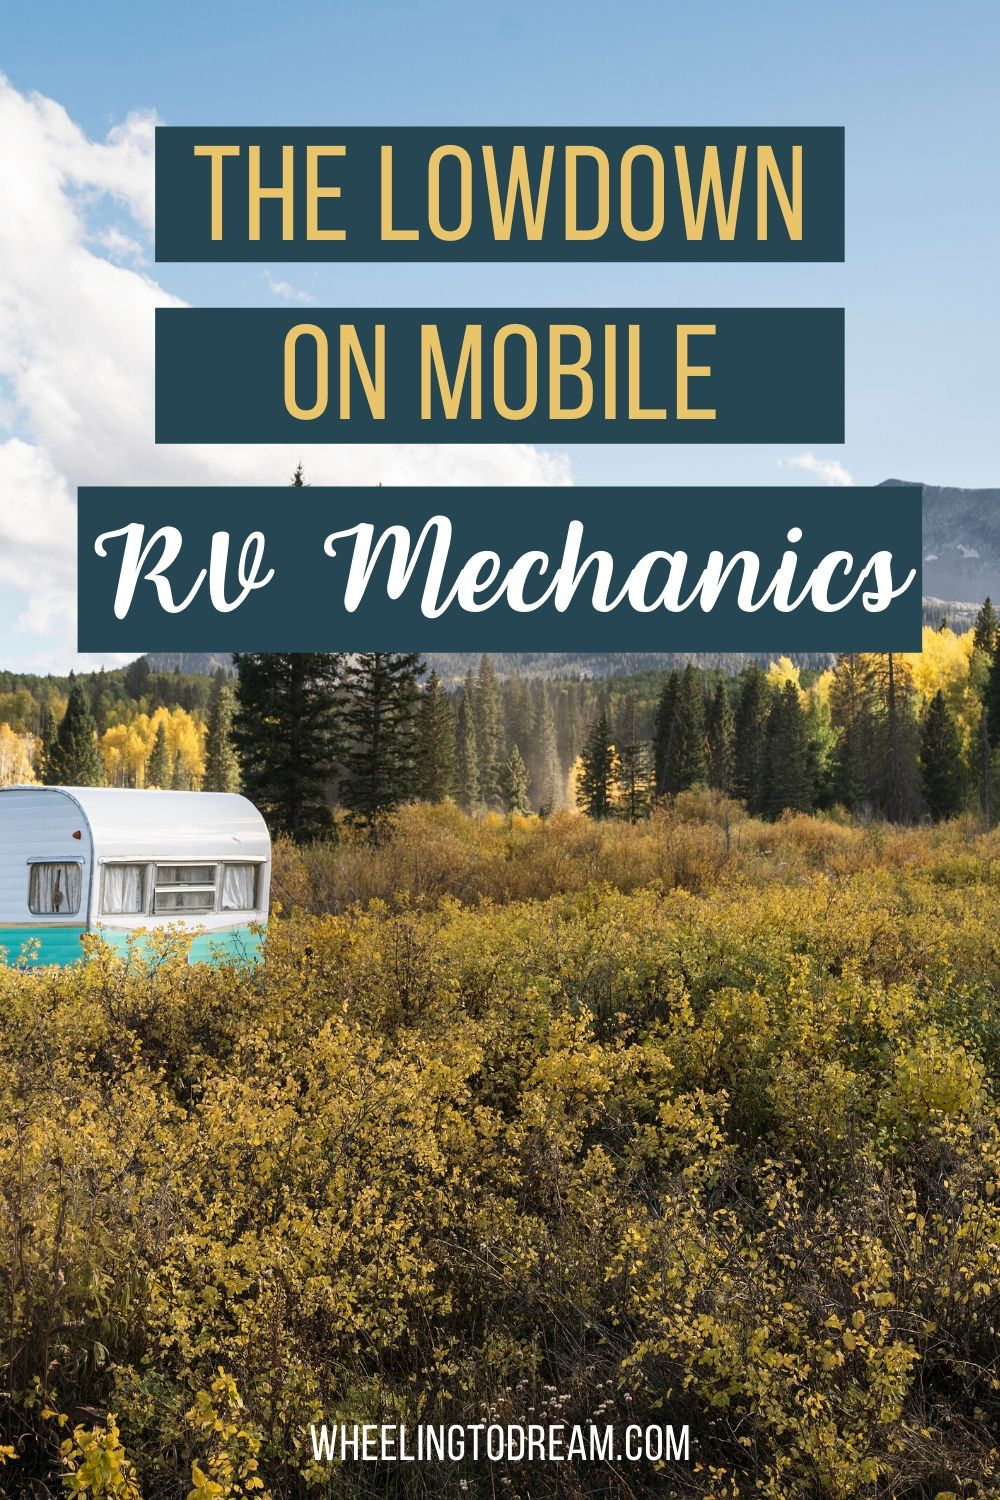 Mobile RV repair techs... should you hire one to perform RV maintenance for you? Learn how to vet a mobile RV repair tech so you aren't getting ripped off. If you're about to perform a major RV repair or looking to get routine RV maintenance done these RV maintenance tips can help you. You may even find tips here that will help you when you are buying a used RV. Those yearly RV maintenance tips are going to stack up... don't get ripped off! #mobilervrepair #rvmaintenance #rvliving